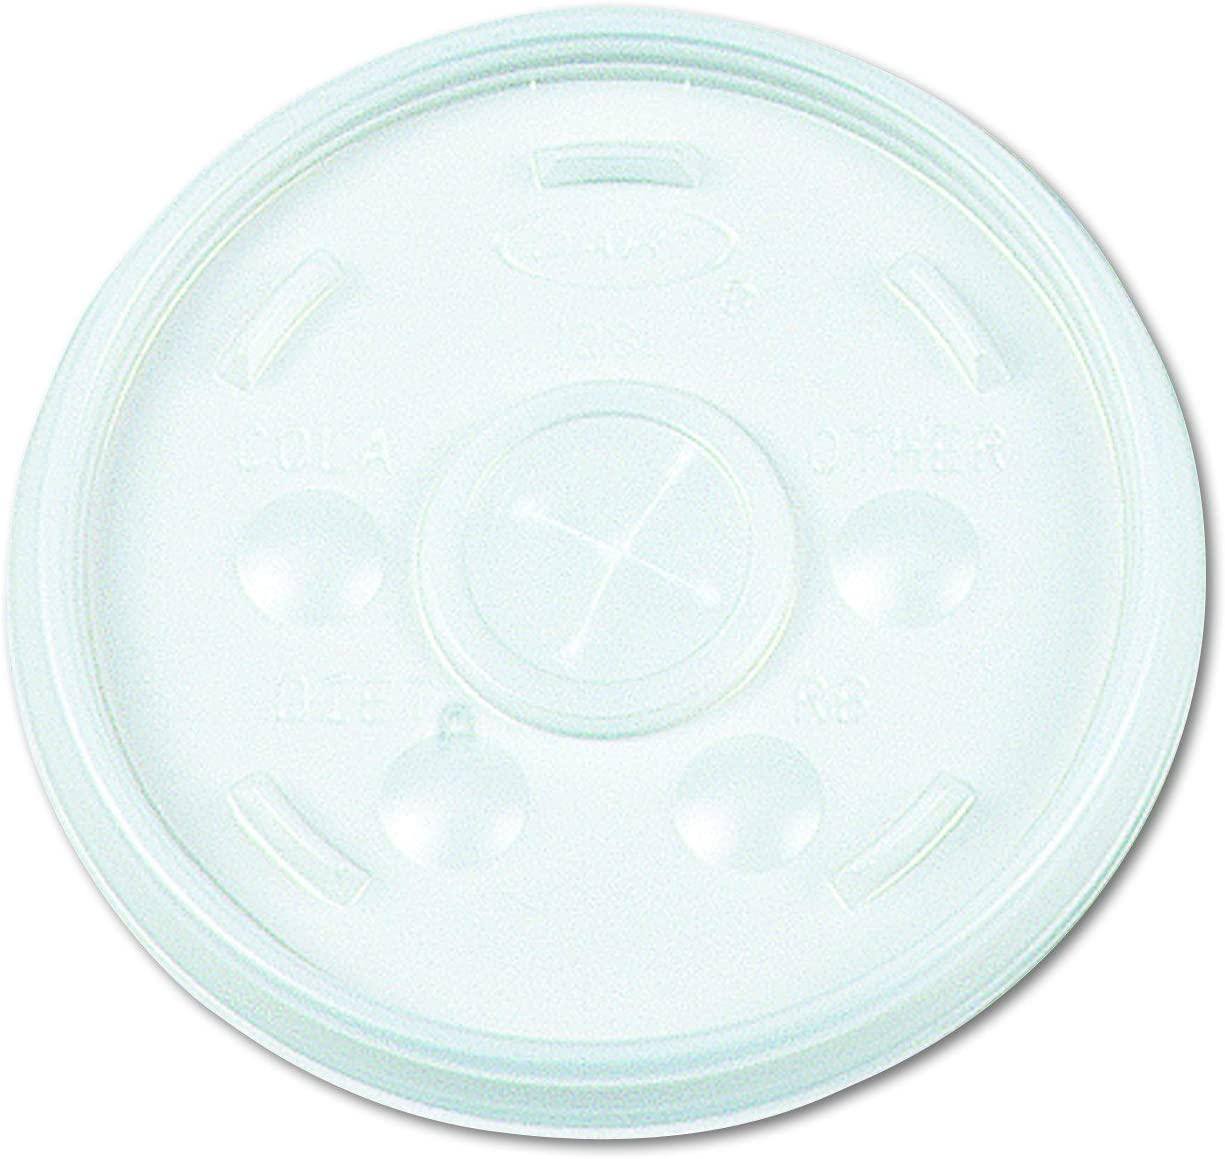 Dart 32SL Plastic Lids, Straw Slot, Fits 32oz Hot/Cold Foam Cups, White (Case of 500)